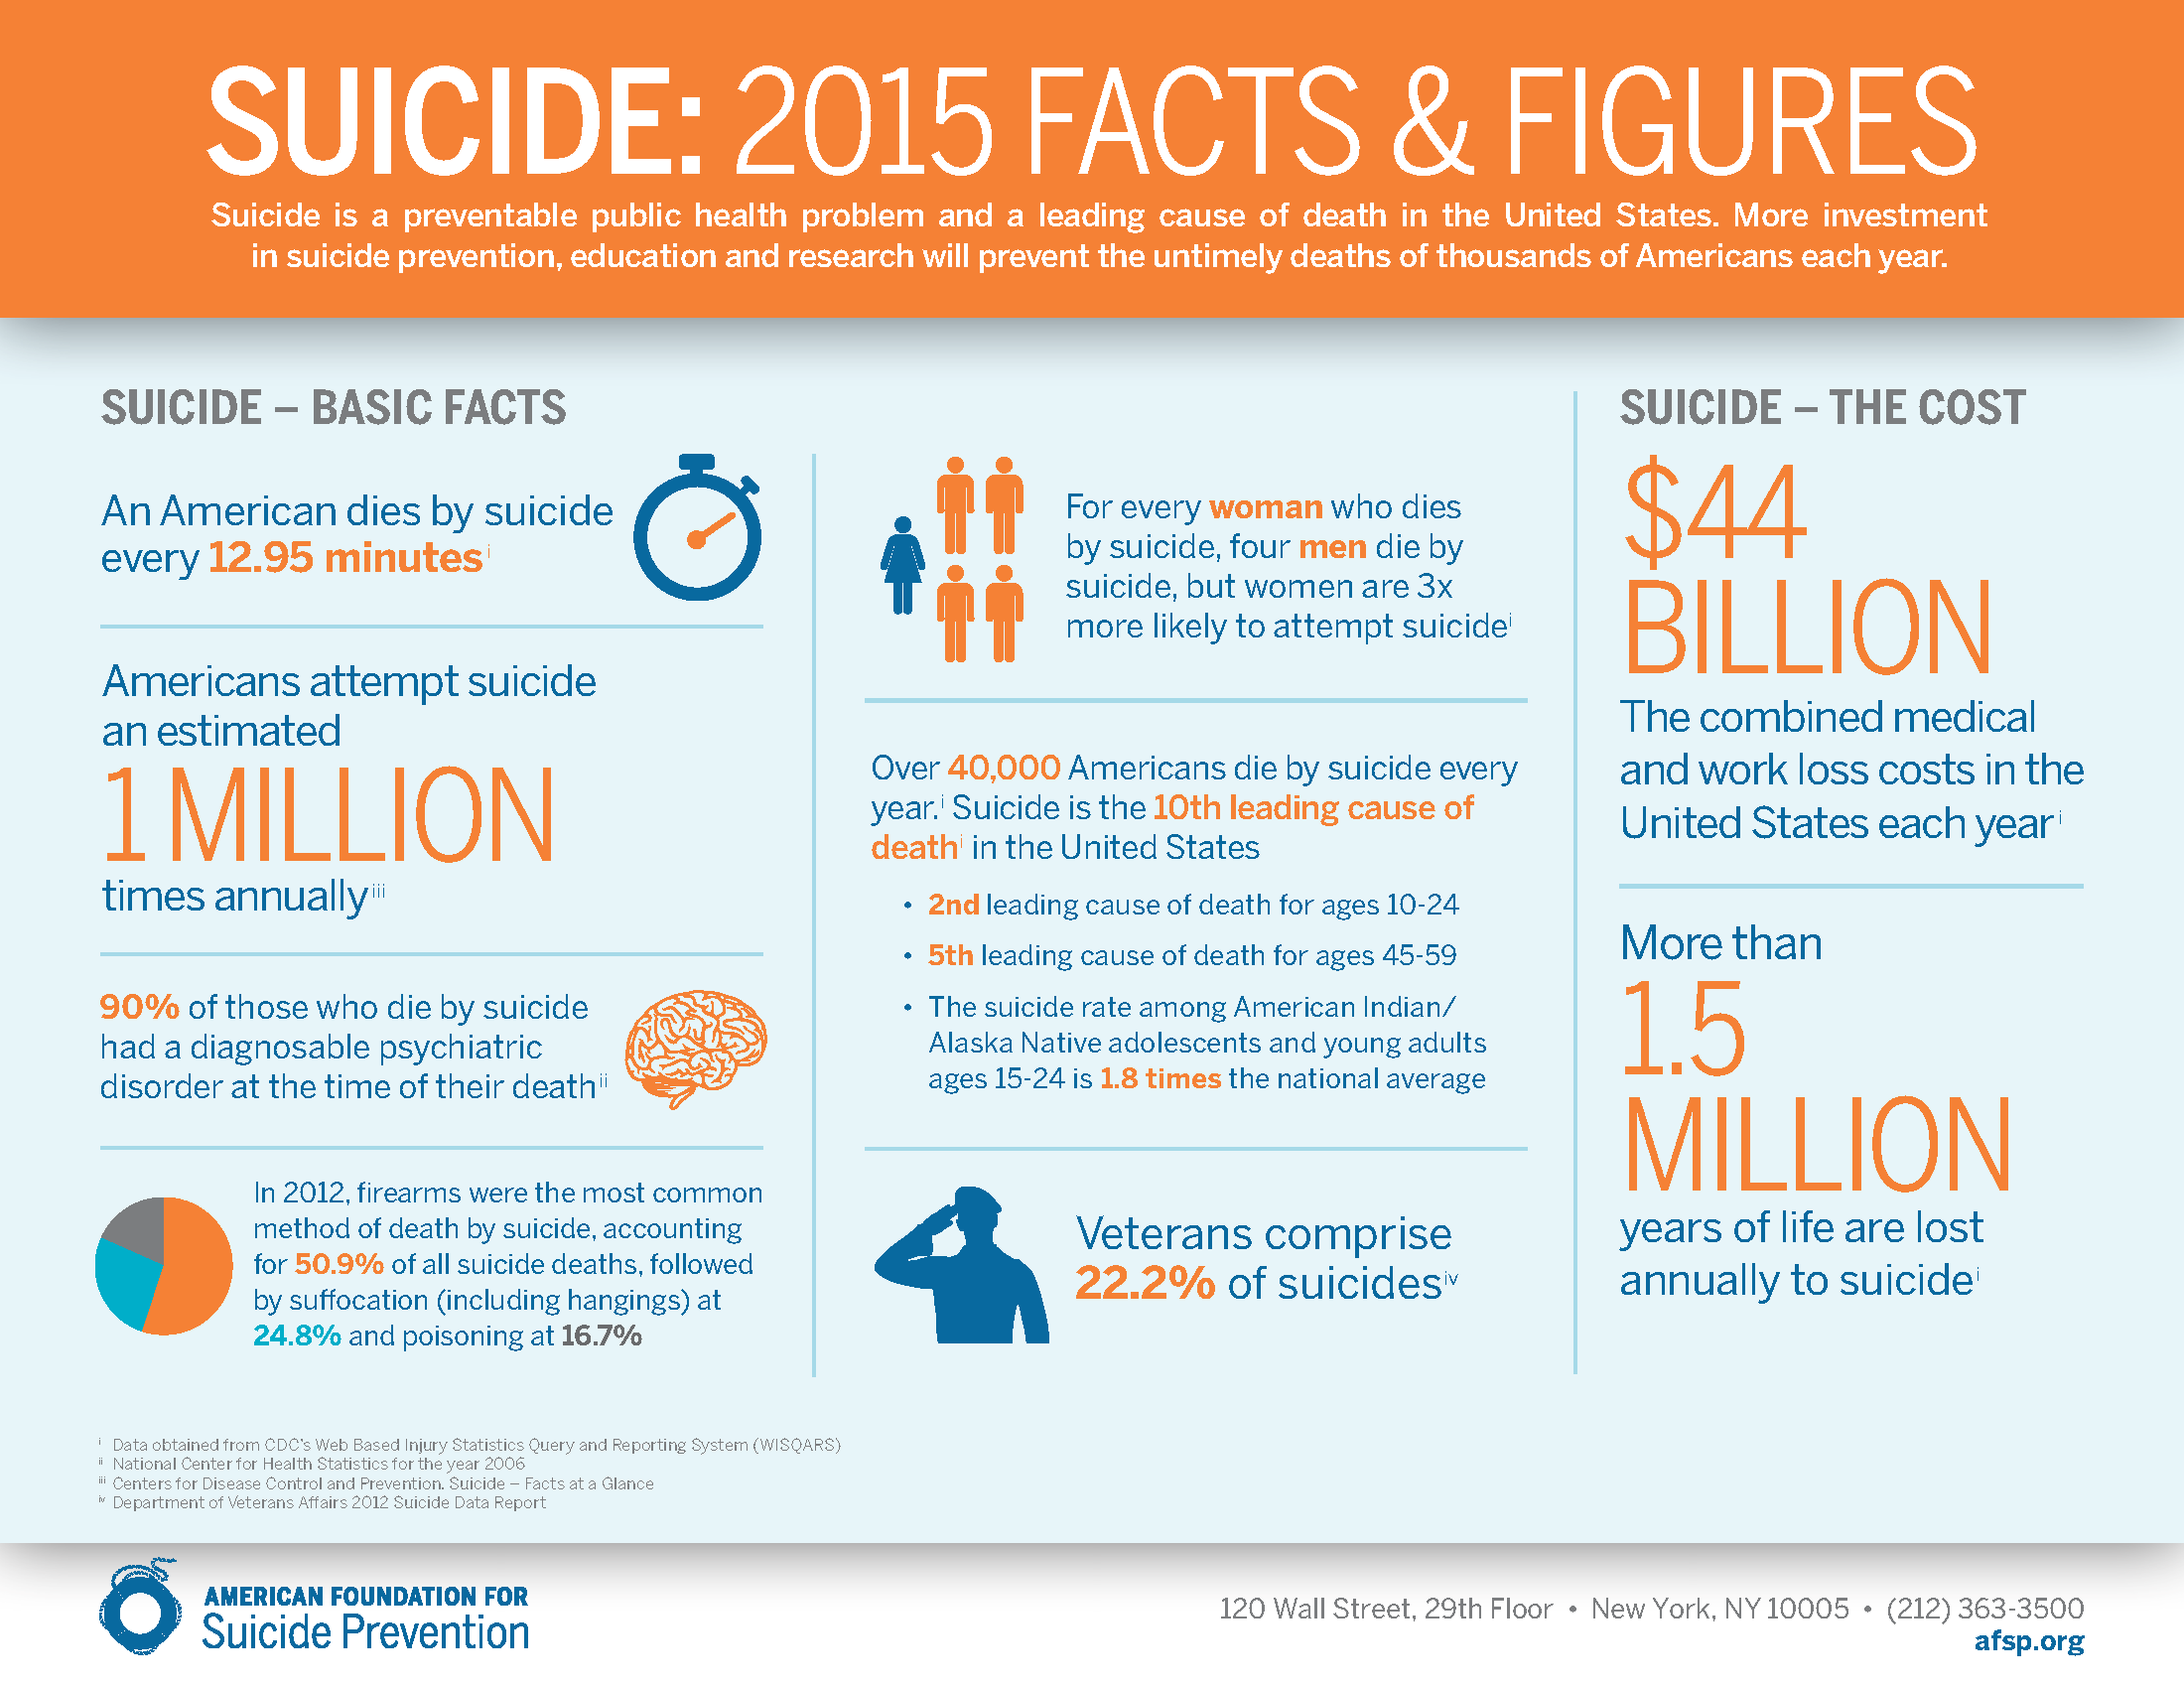 suicide-2015-facts-and-figures-infographic